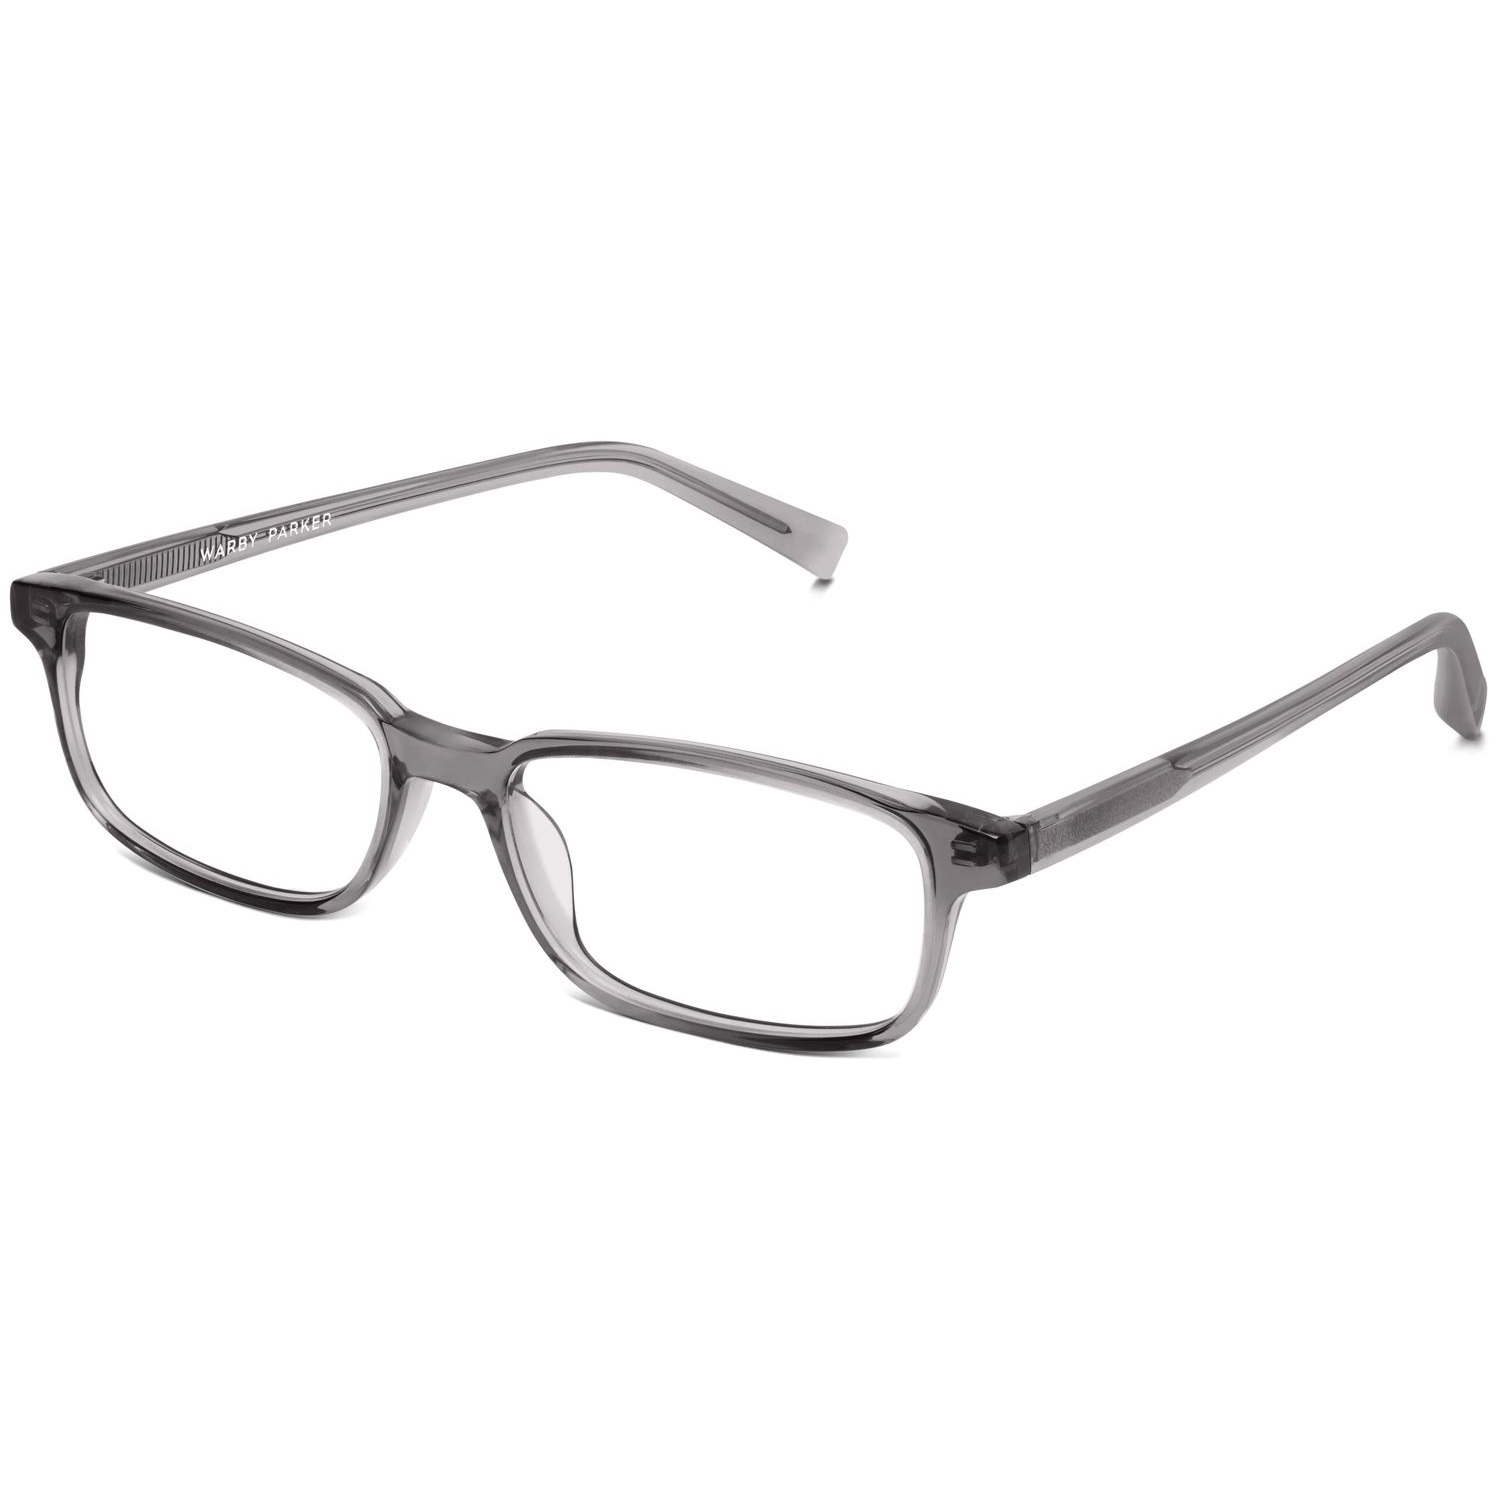 724d0be4aba9 Mitchell Eyeglasses for Men   Women — Eyewear Blogger